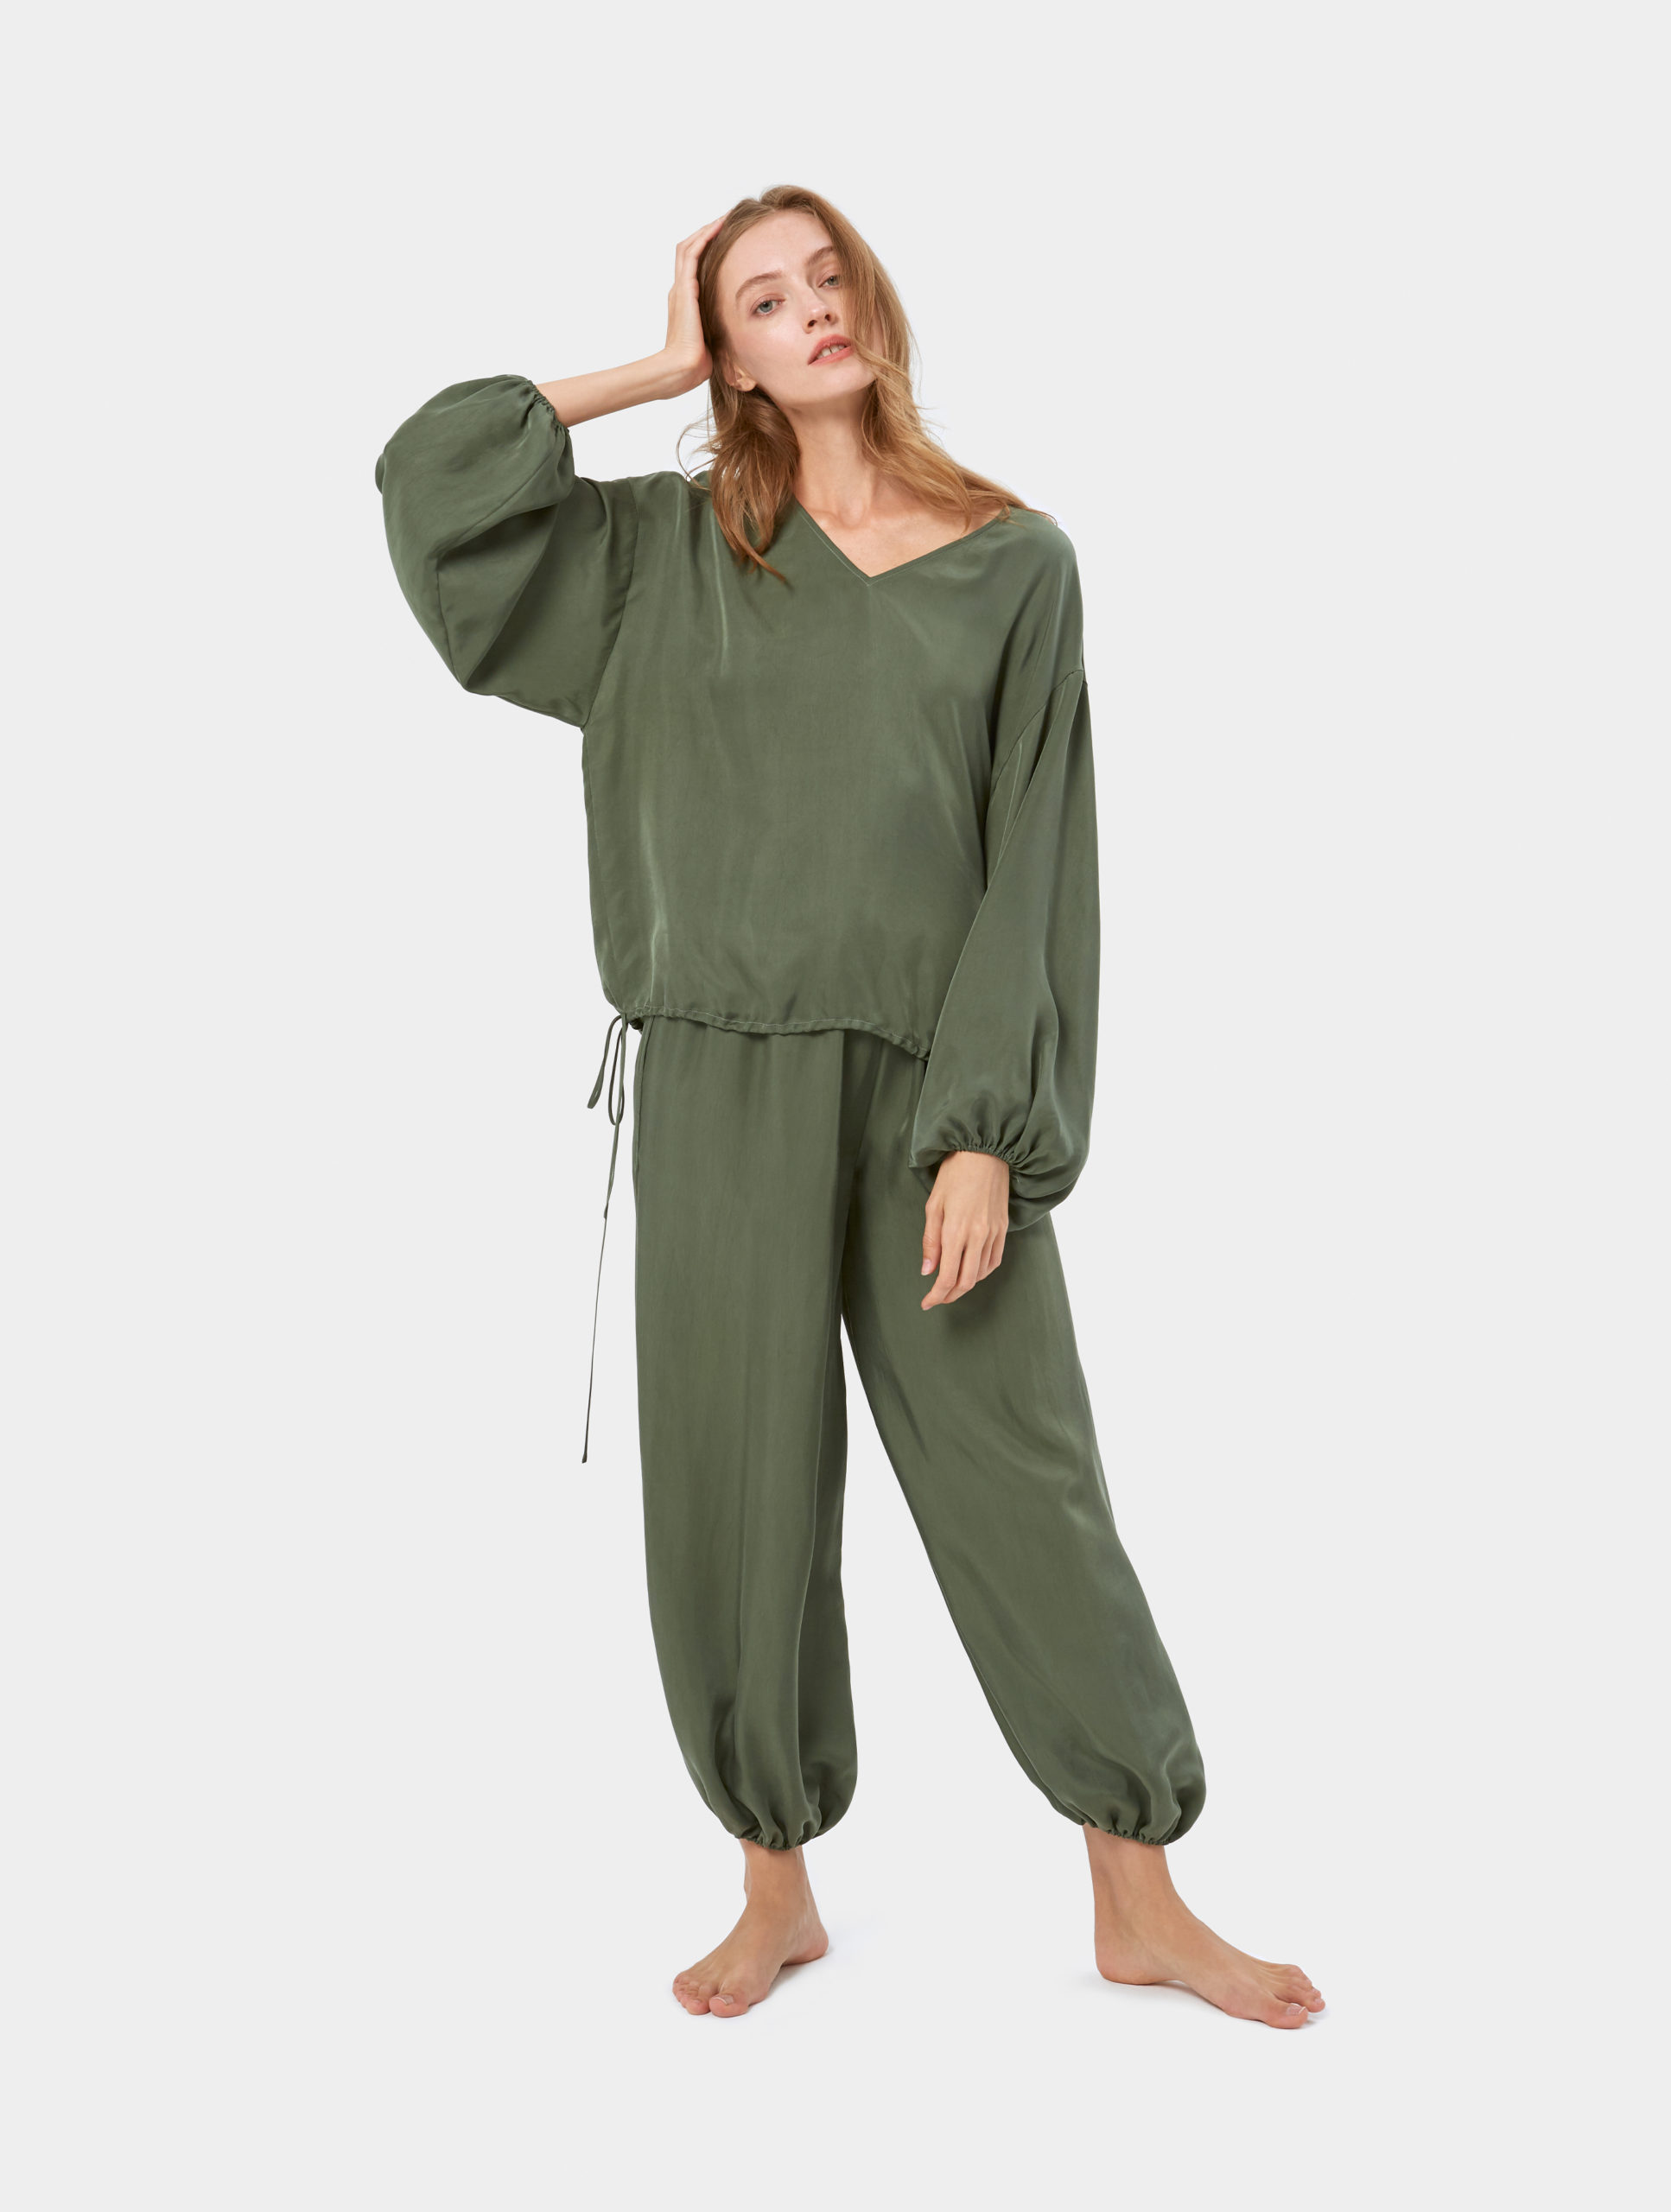 Cool Silk Puff Sleeve Set - Women's Sleepwear Sets | Nap - The Luxury Sleepwear